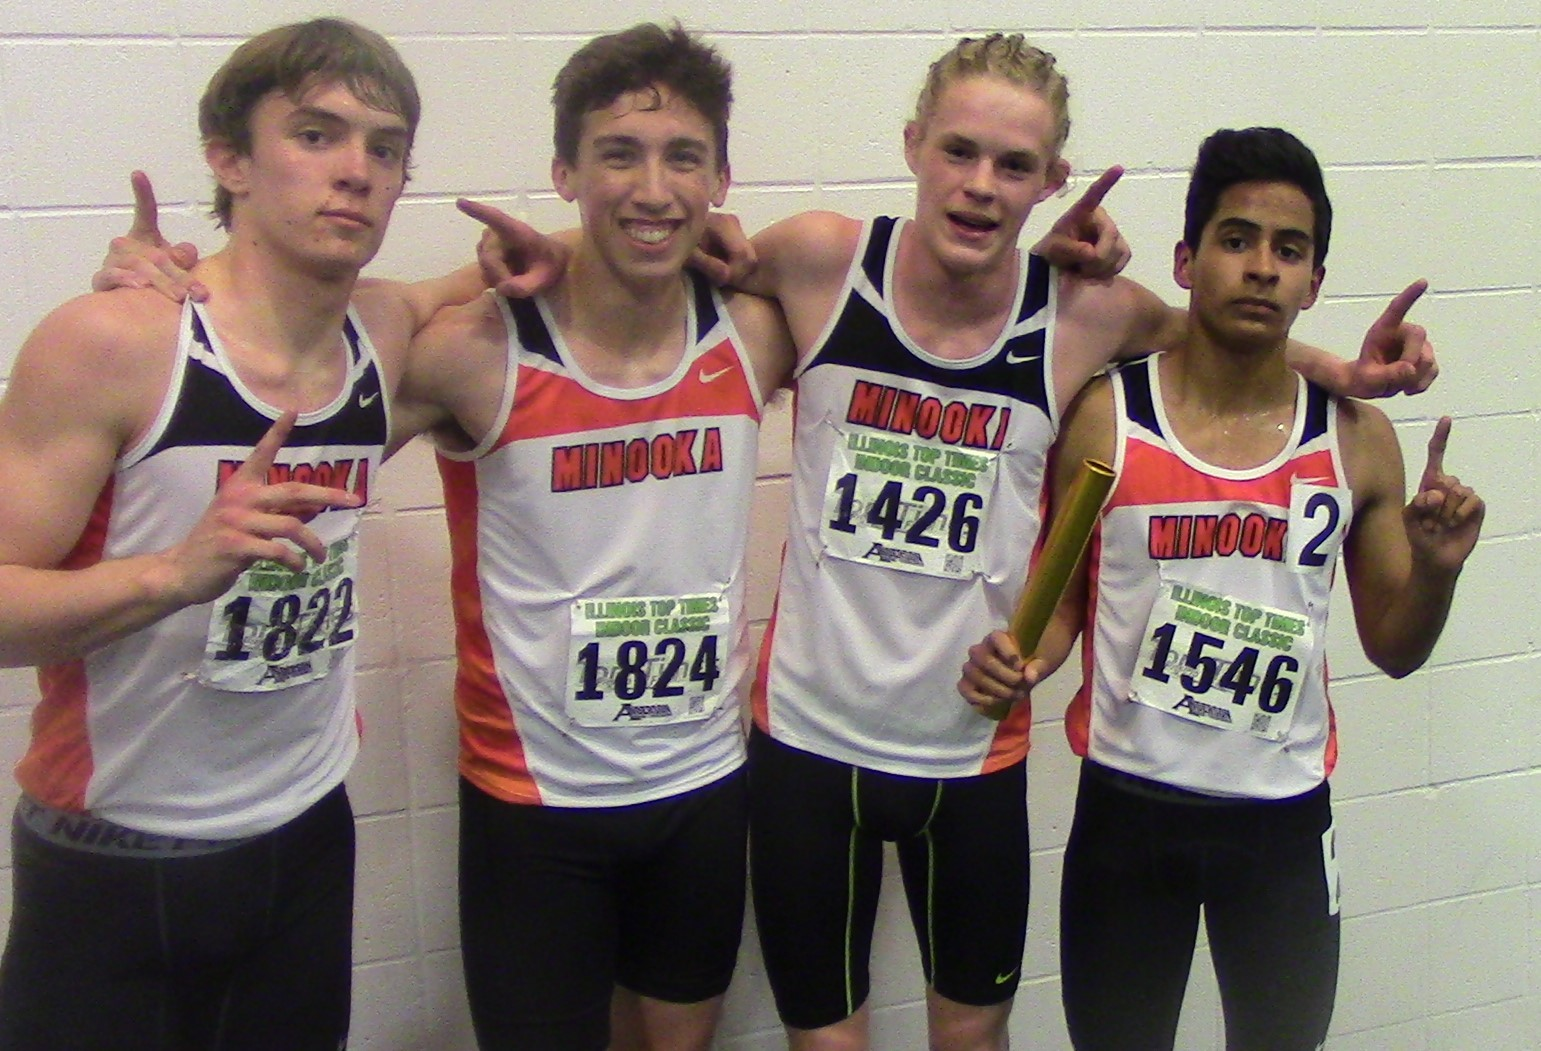 Illinois Top Times Championships - Distance Events Thoughts